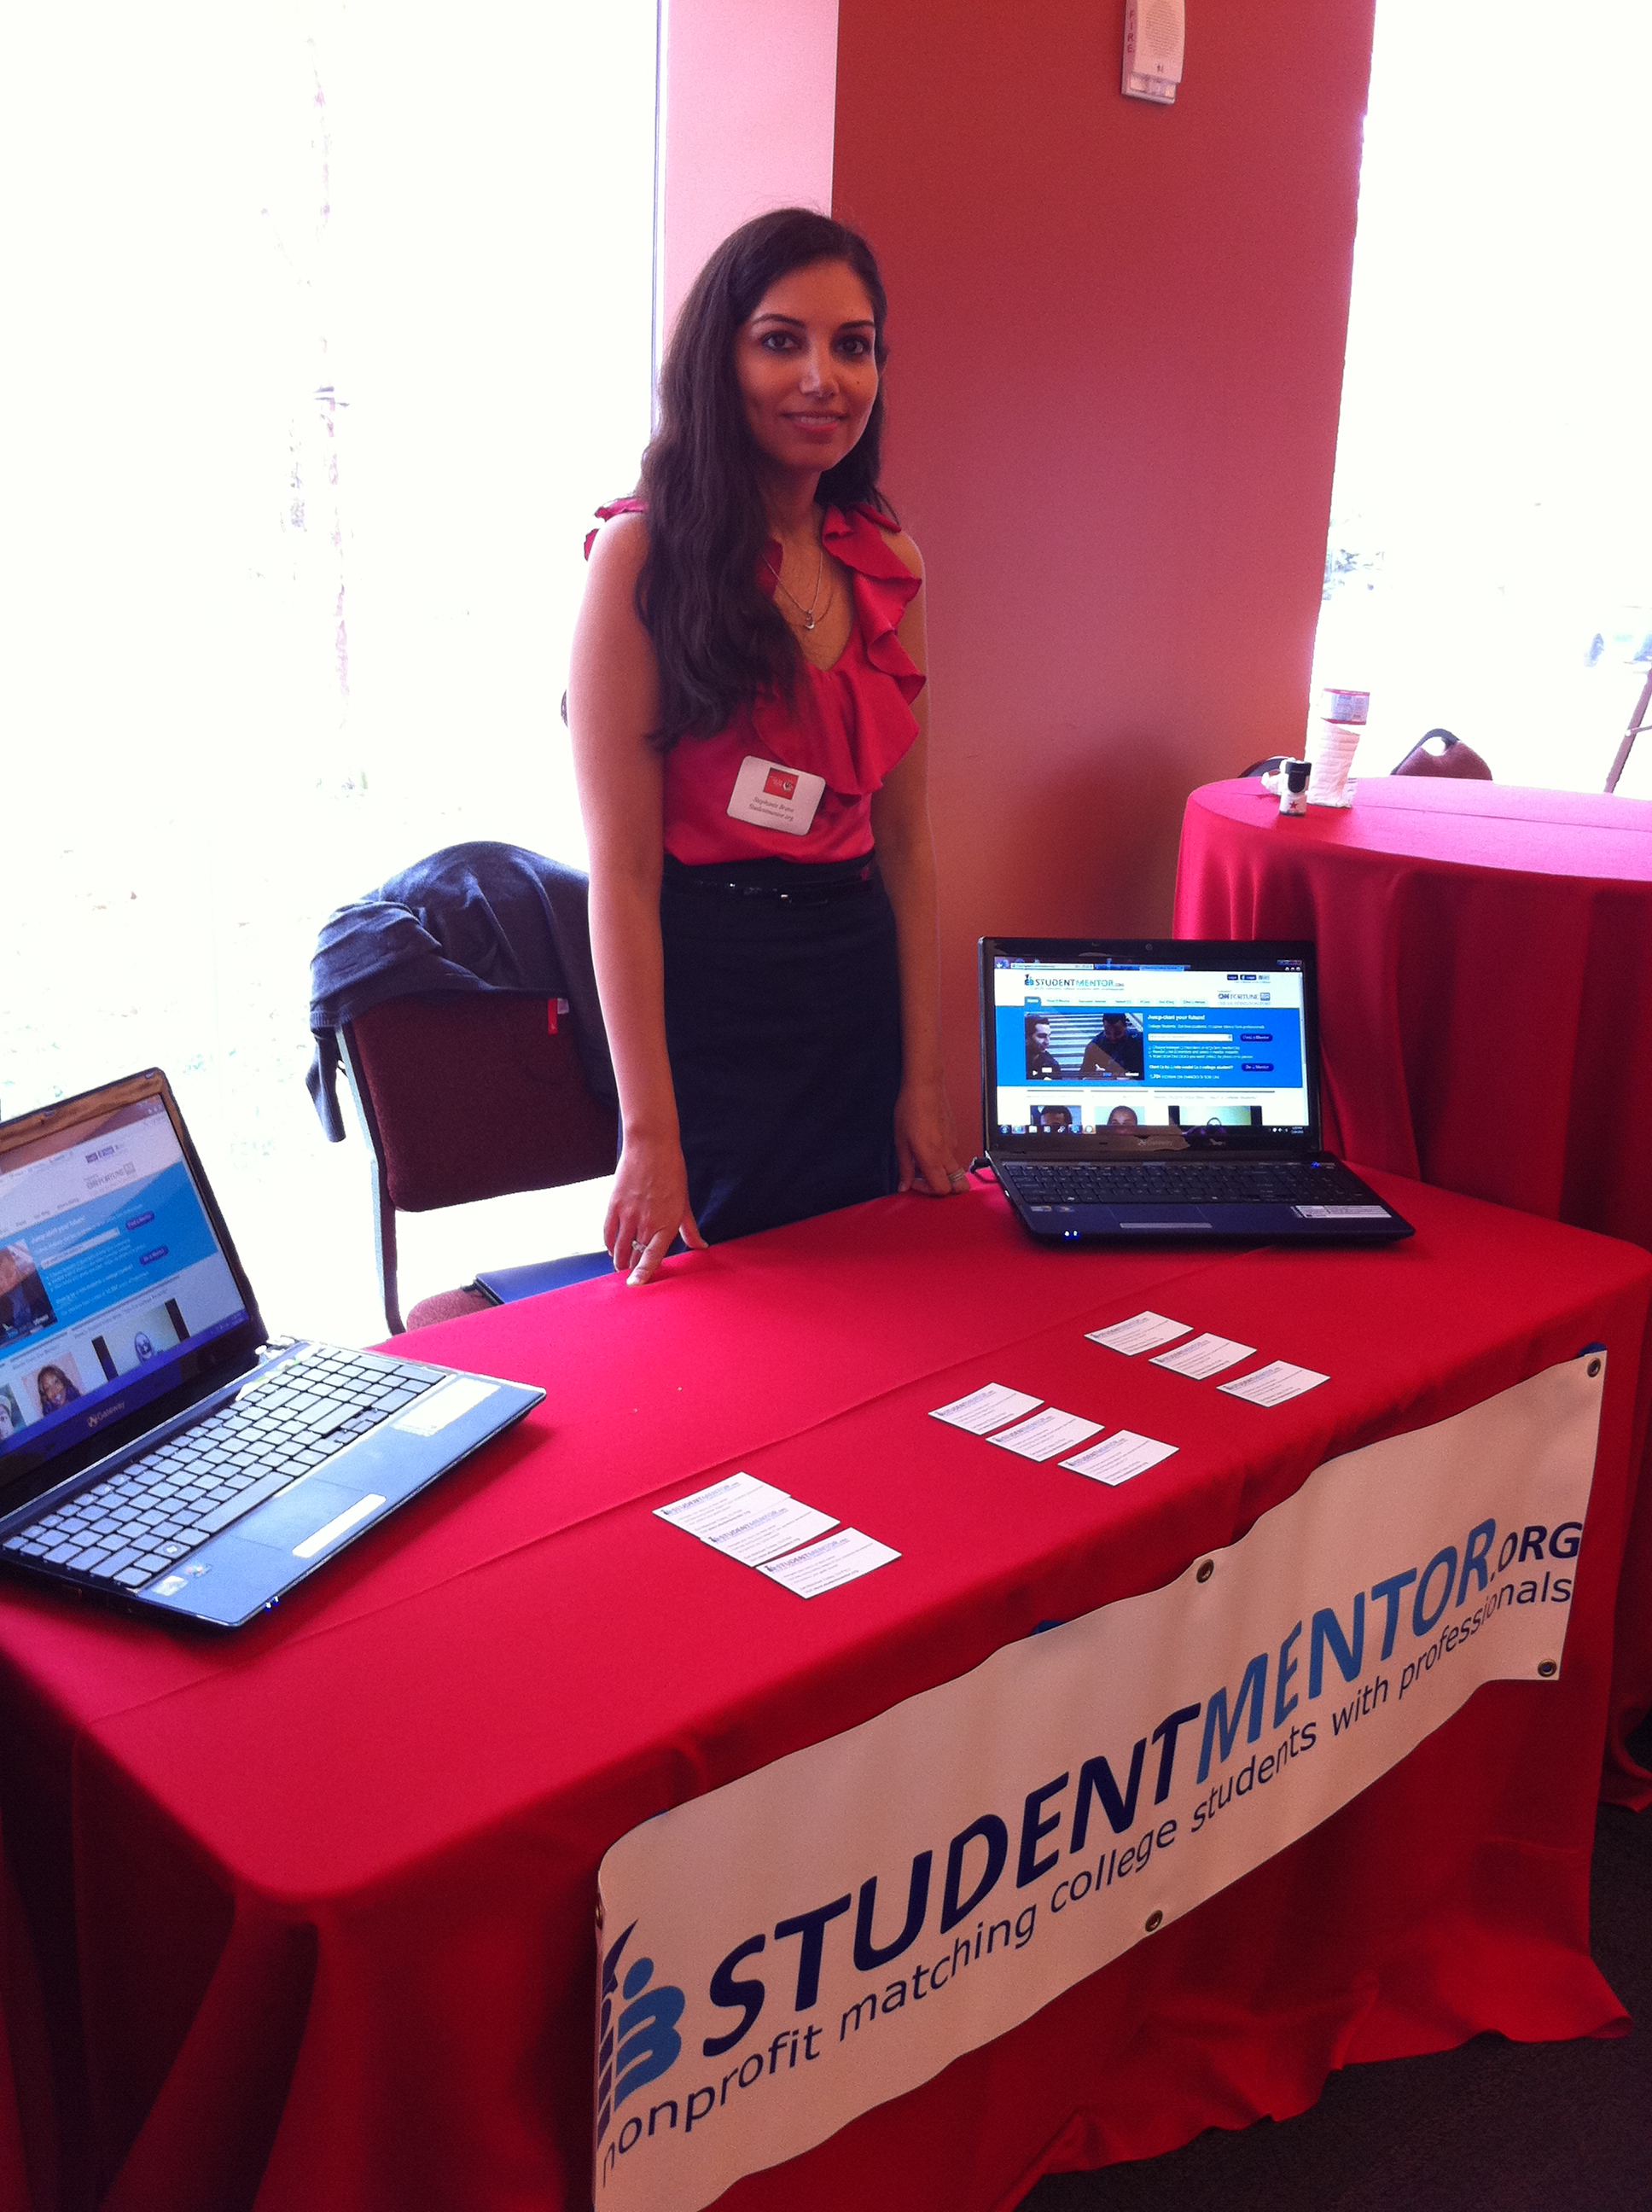 Stephanie Bravo, chief program officer of Strive for College, is the co-founder of StudentMentor.org.